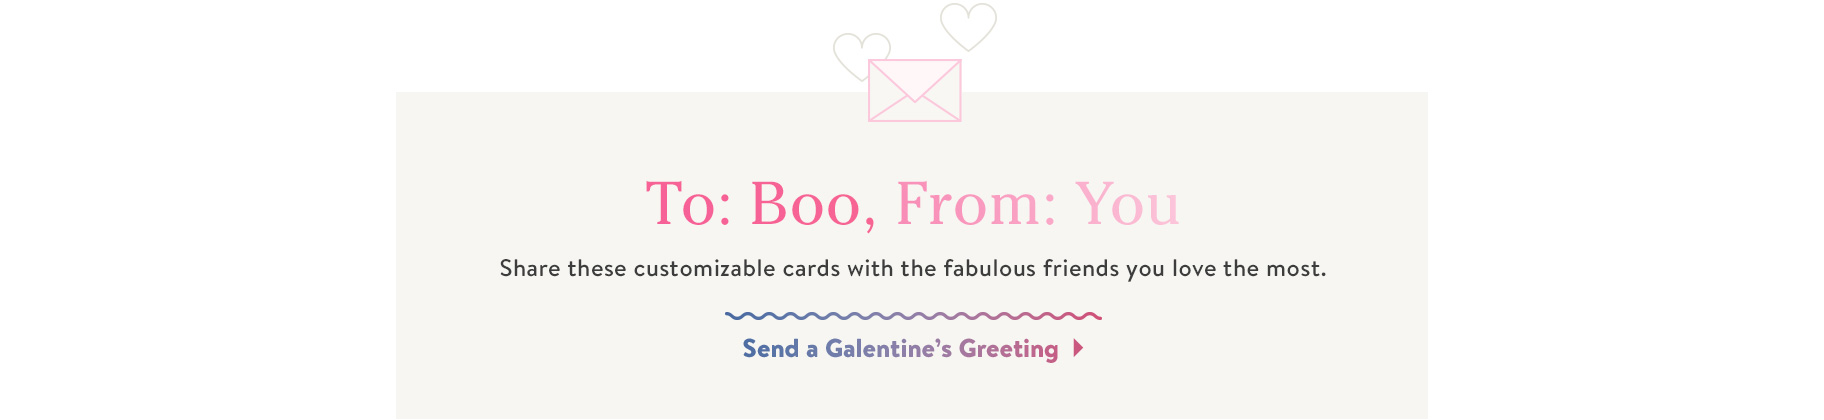 To Boo, From: You. Share these customizable cards with the fabulous friends you love the most. Send a Galentine's Greeting